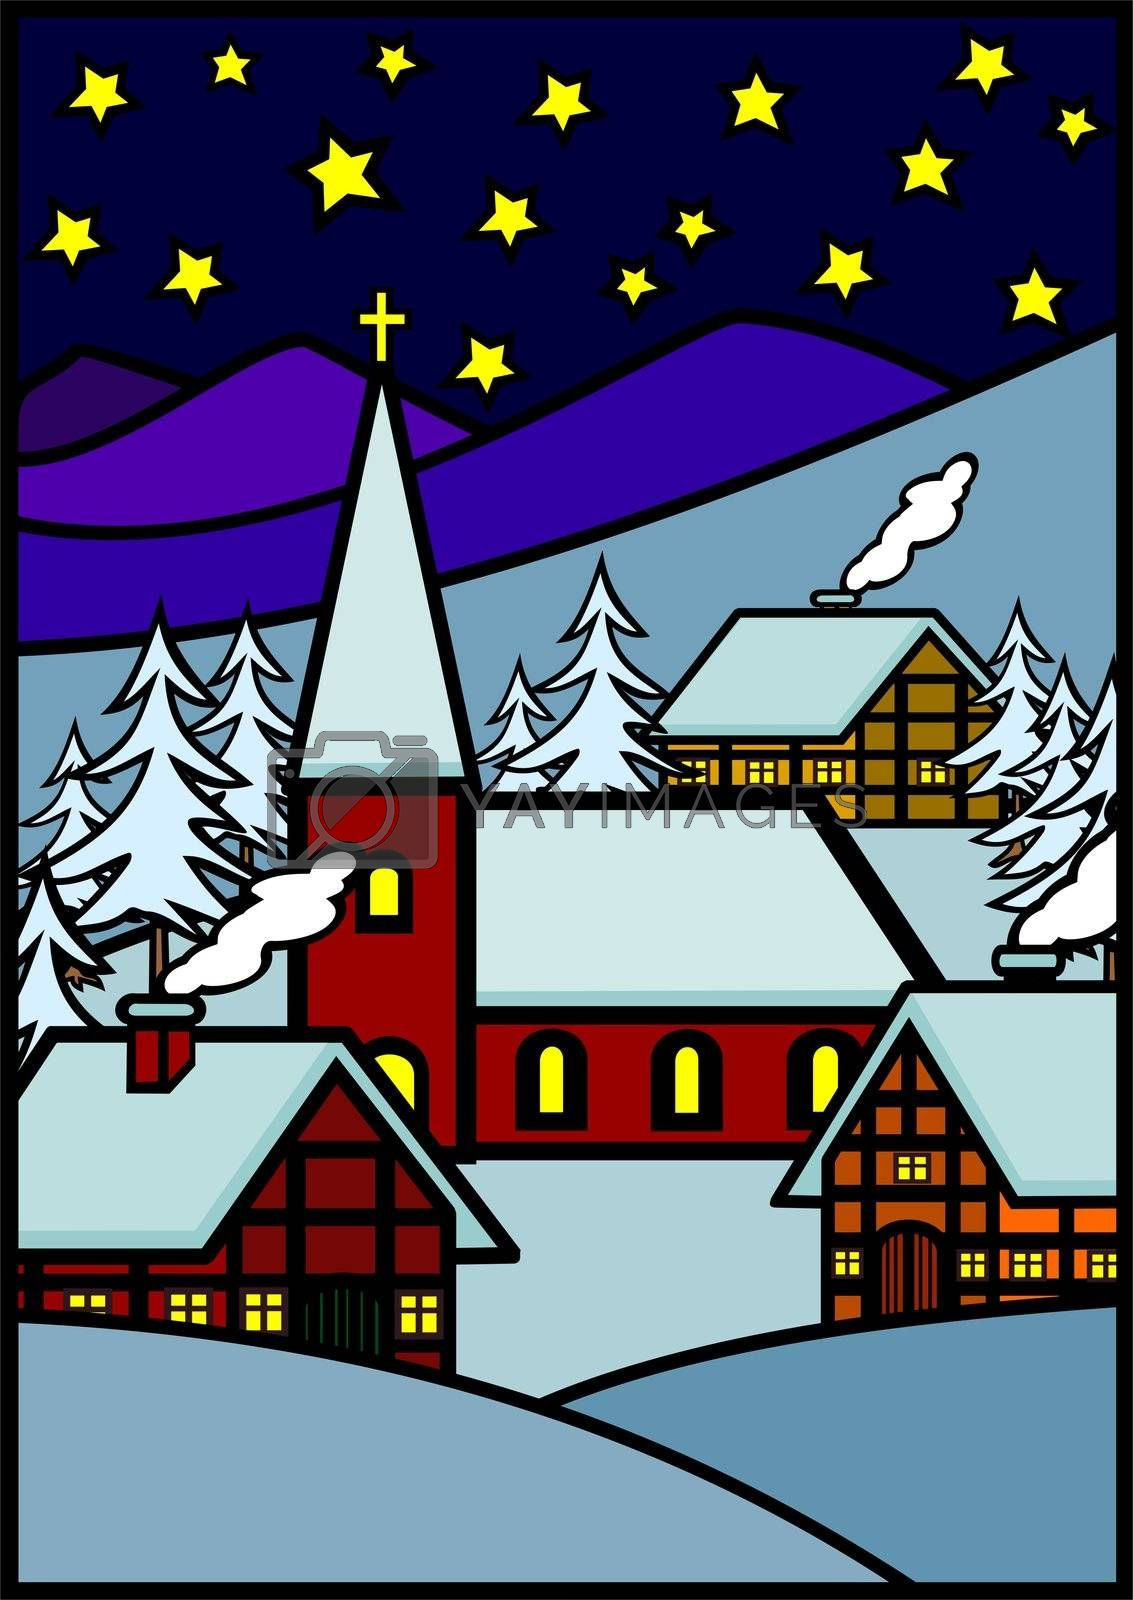 Christmas winter village in the snow, illustration